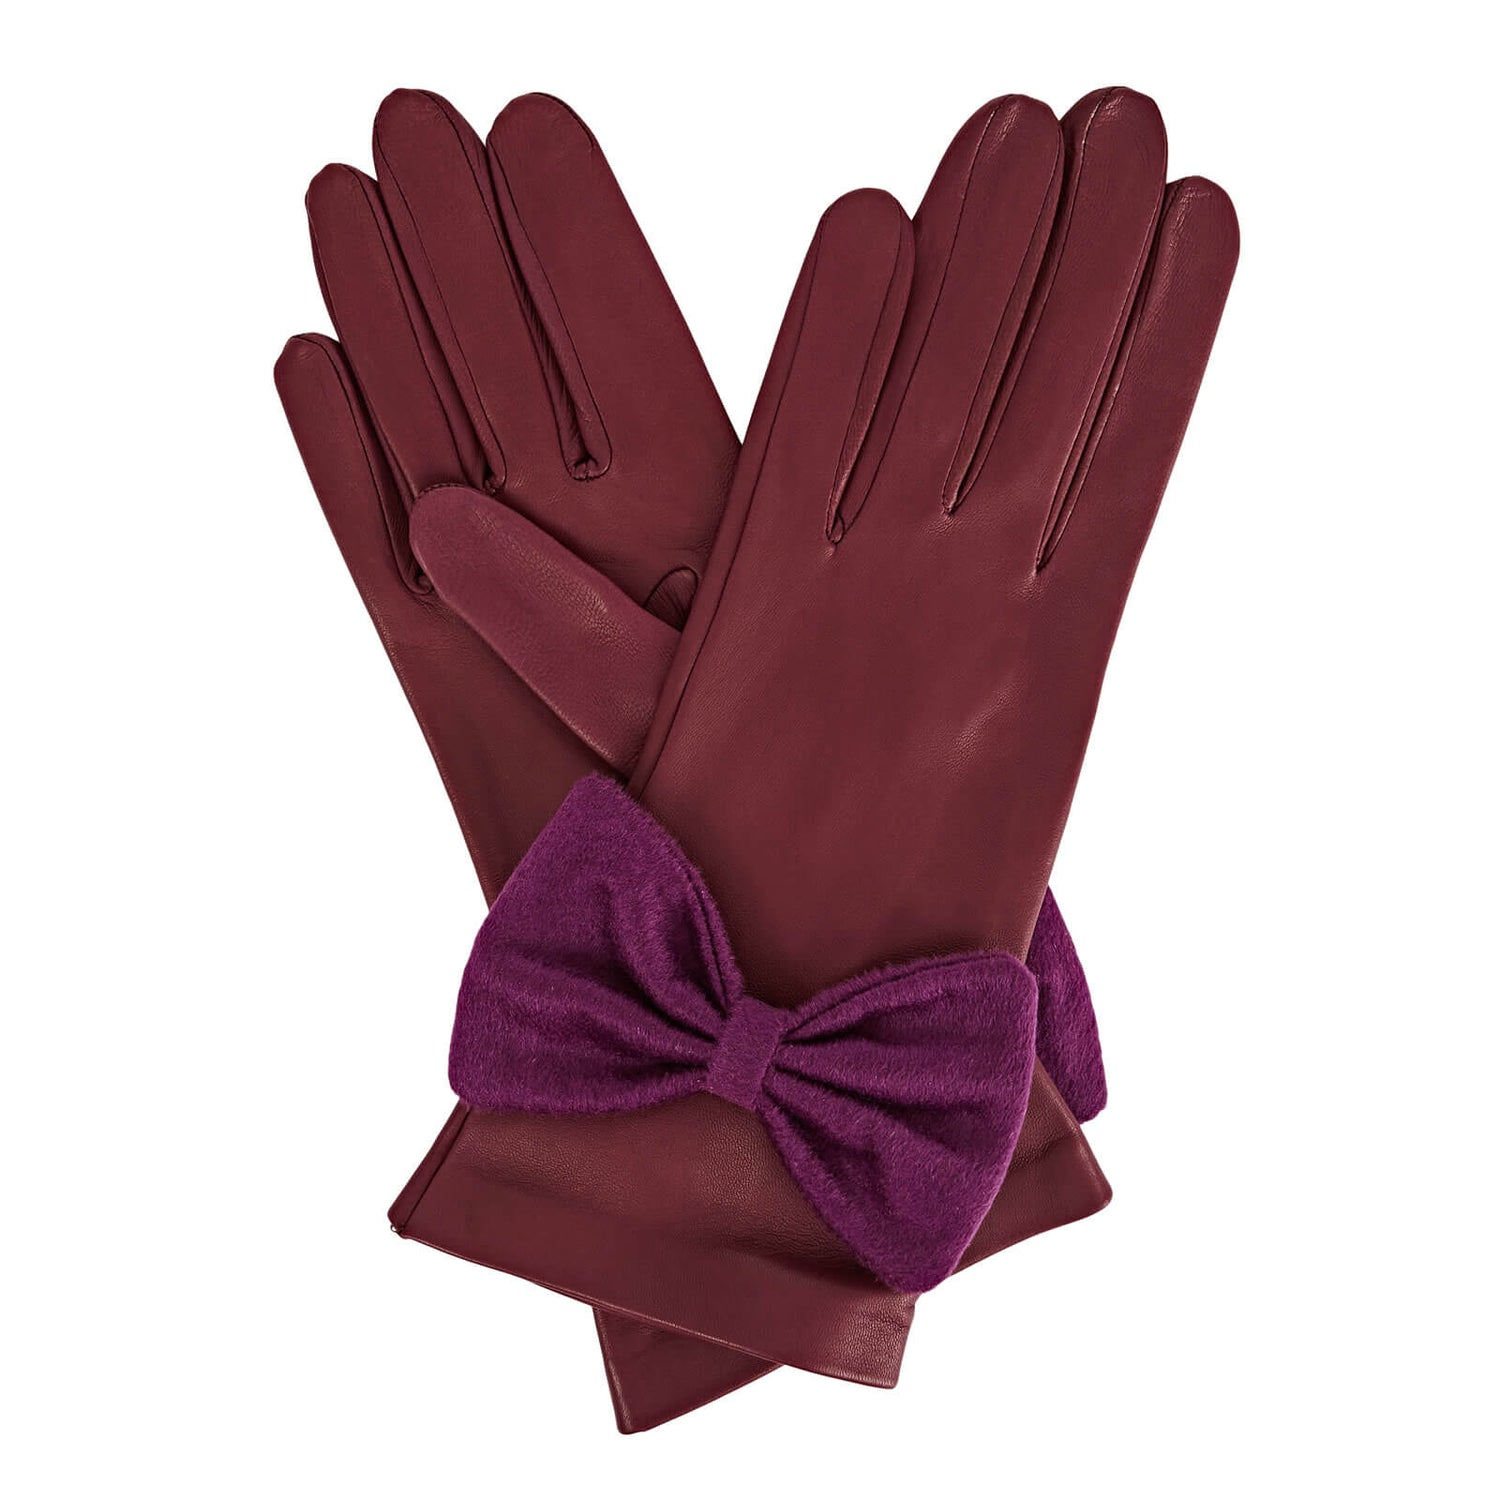 Gizelle Renee Josephine Nappa Lambskin Unlined Glove Embellished with a Hand-sewn Bow